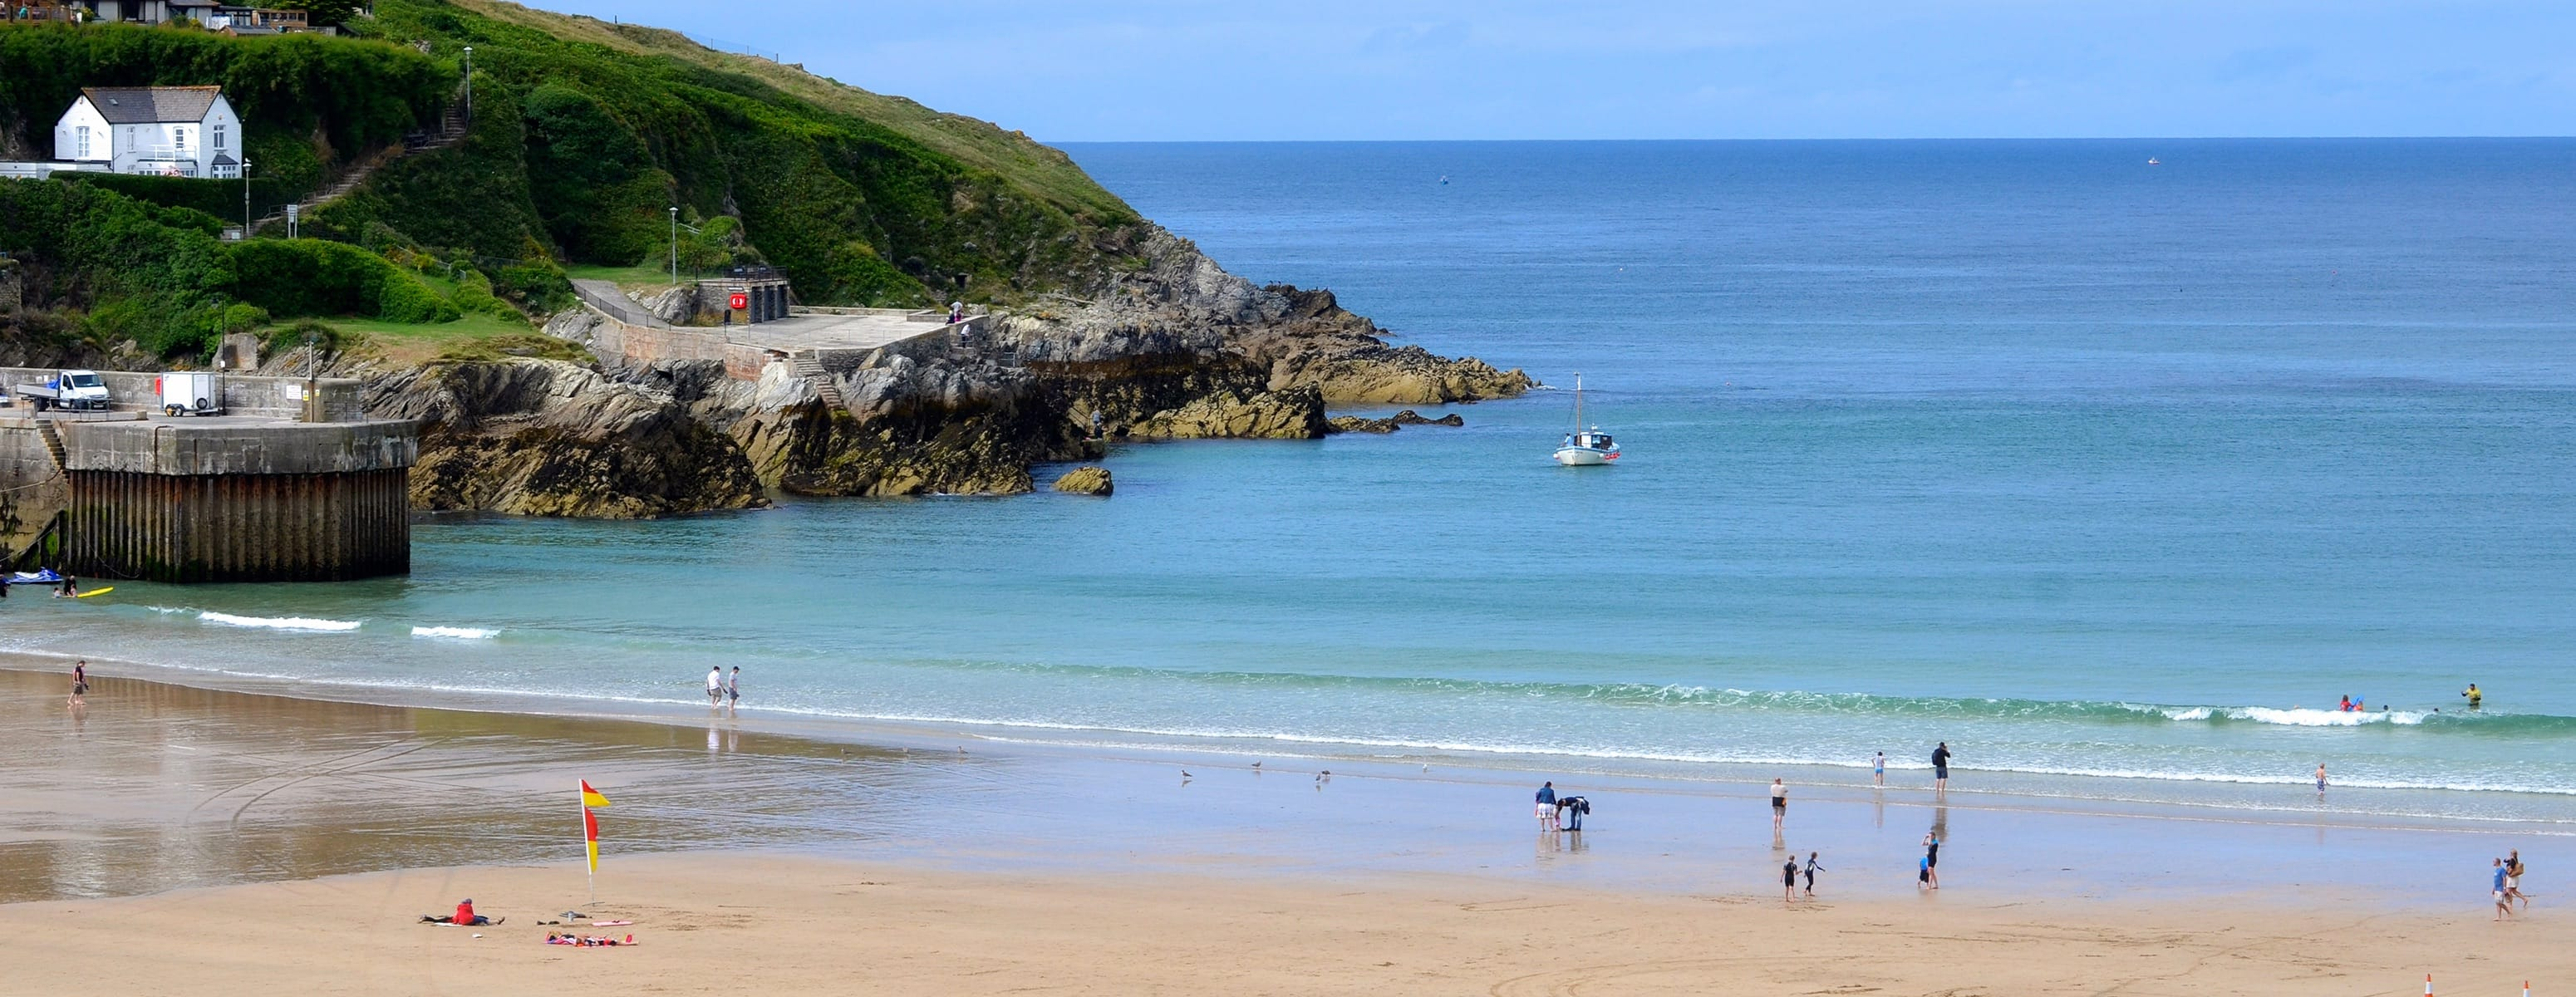 Vacation rentals in St Ives